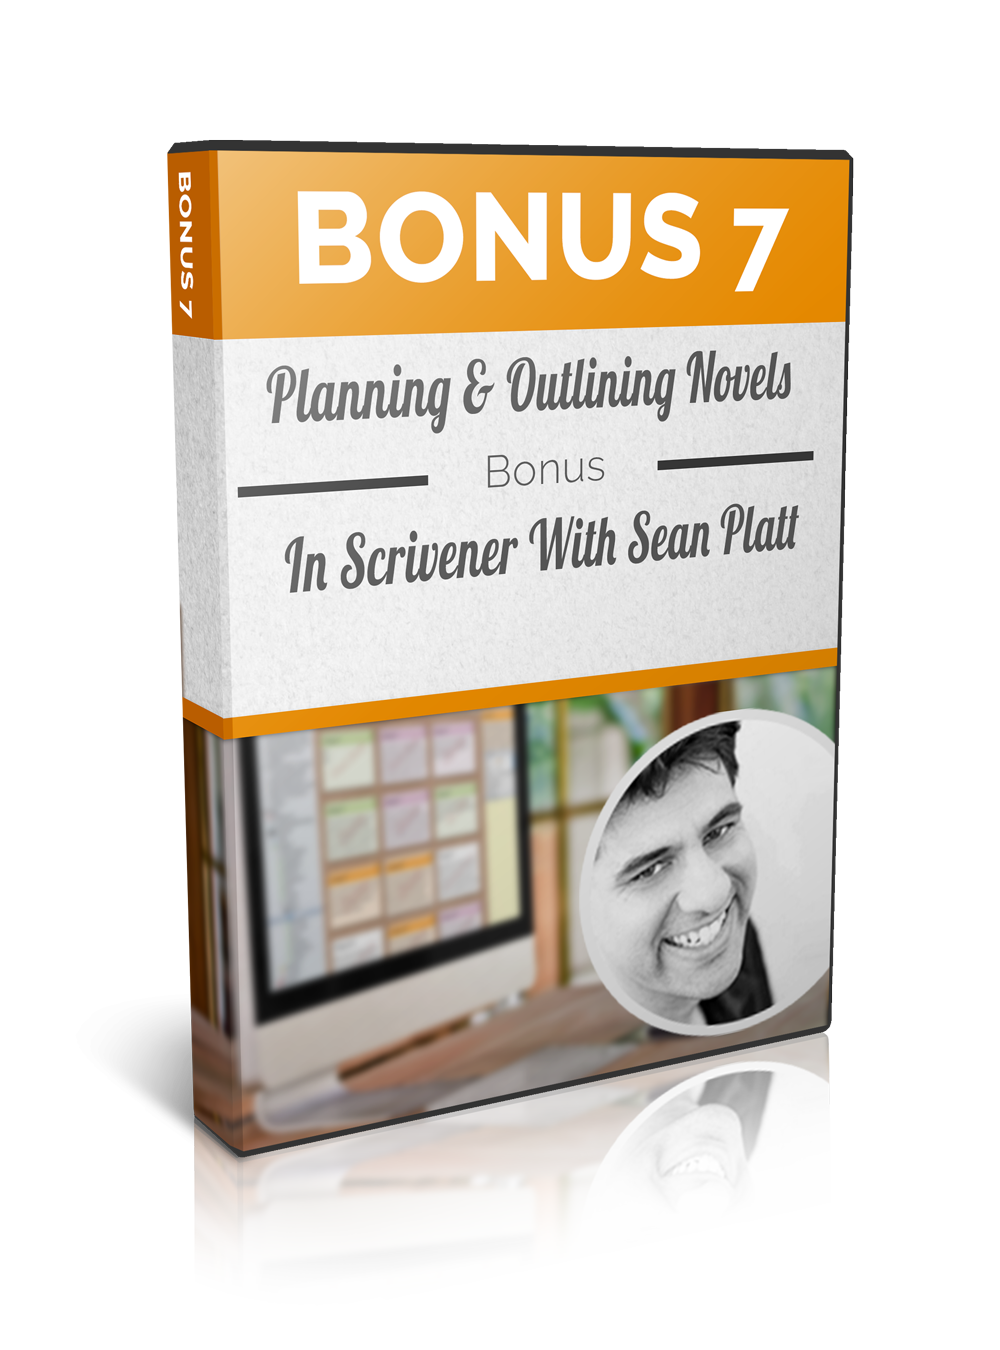 www.learn-scrivener-fast.com Scrivener Training & Coaching Course - Bonus 7 - Planning & Outling Novels